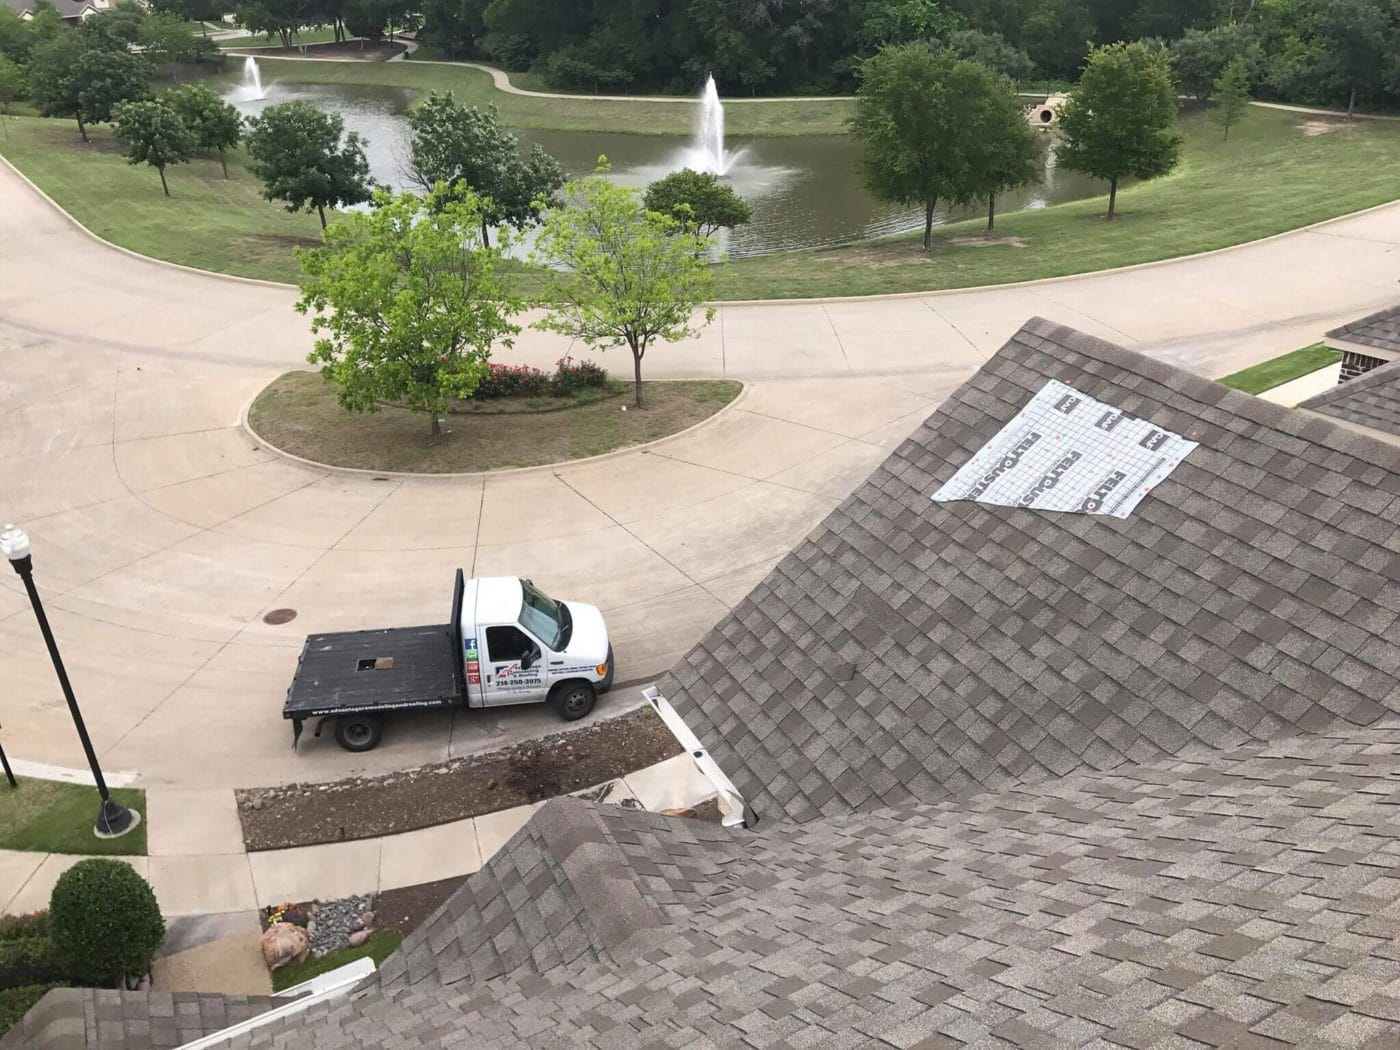 roof shingles covers for upcoming repairs